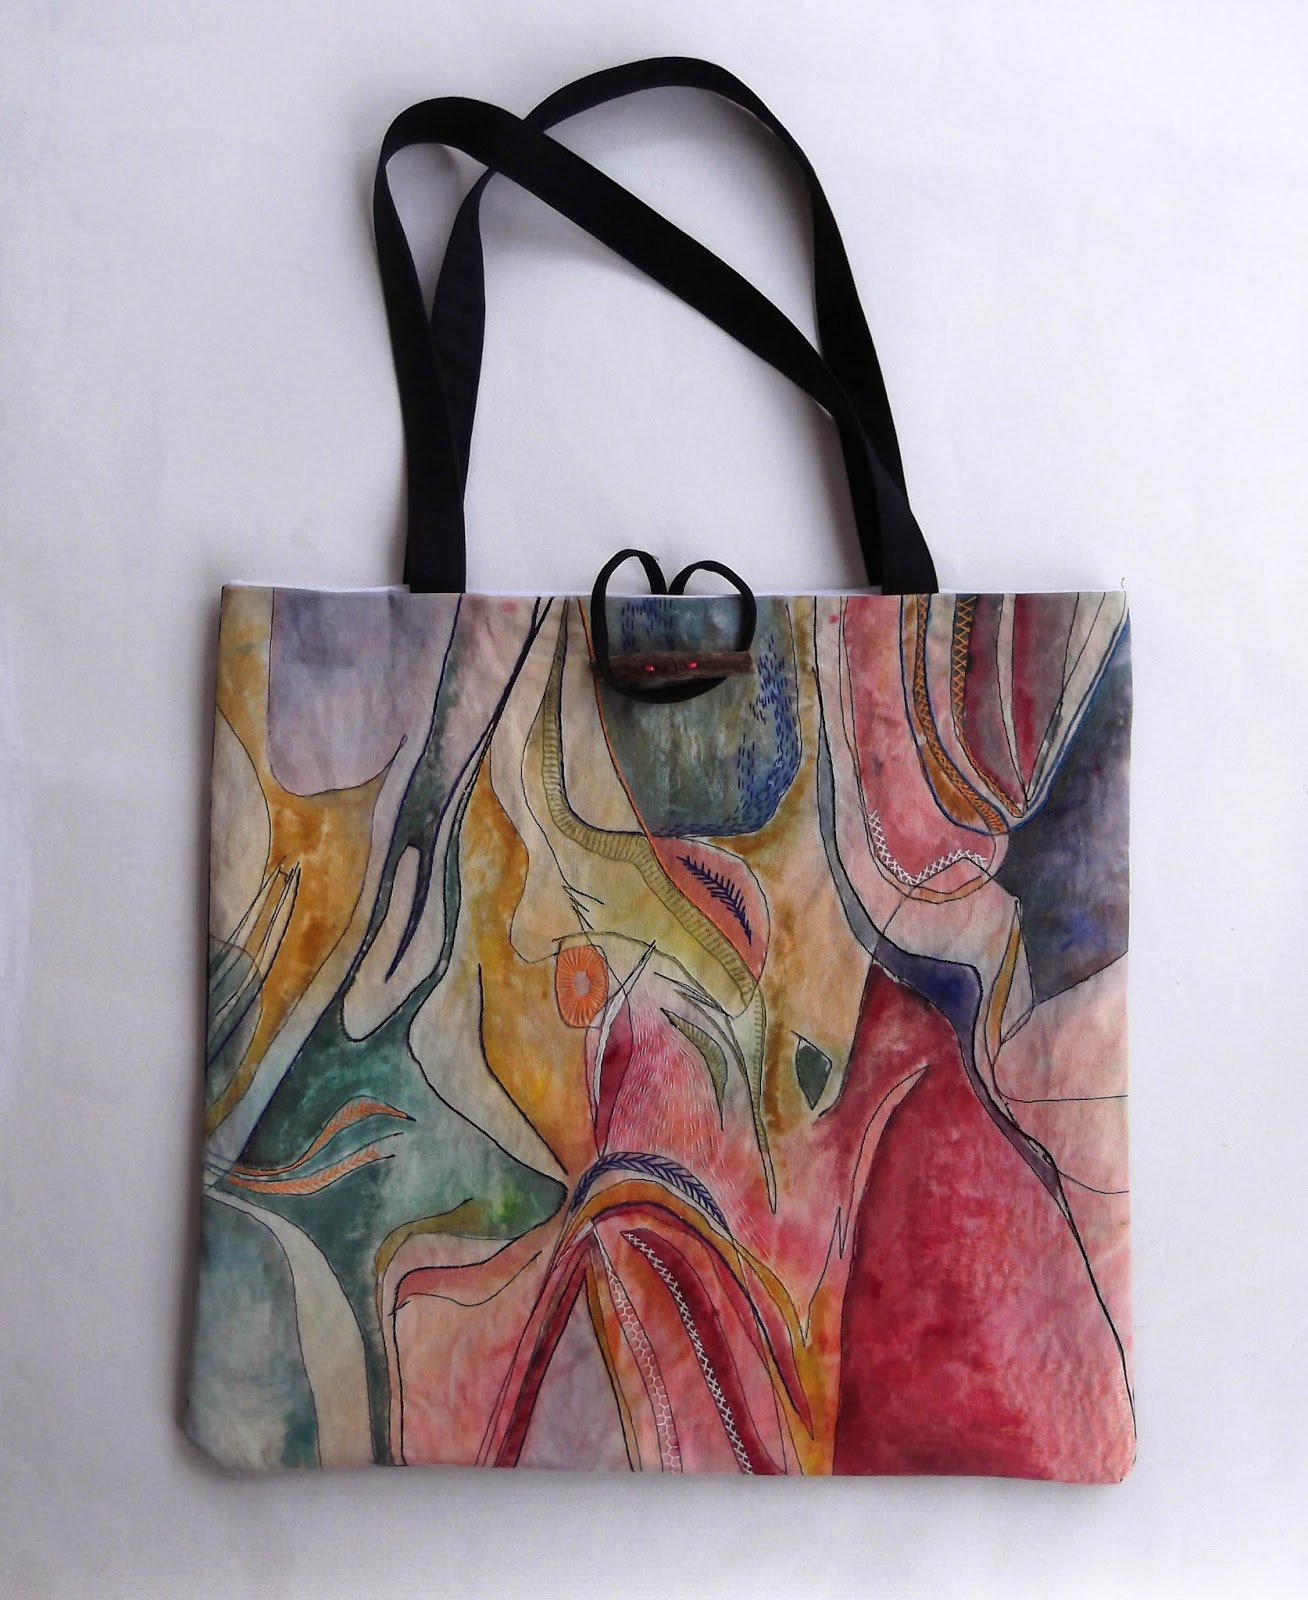 painted bag, painted fabric, hand painted fabric, hand painted bag, canvas bag, tote bag, tote bag free tutorial, tote bag free pattern